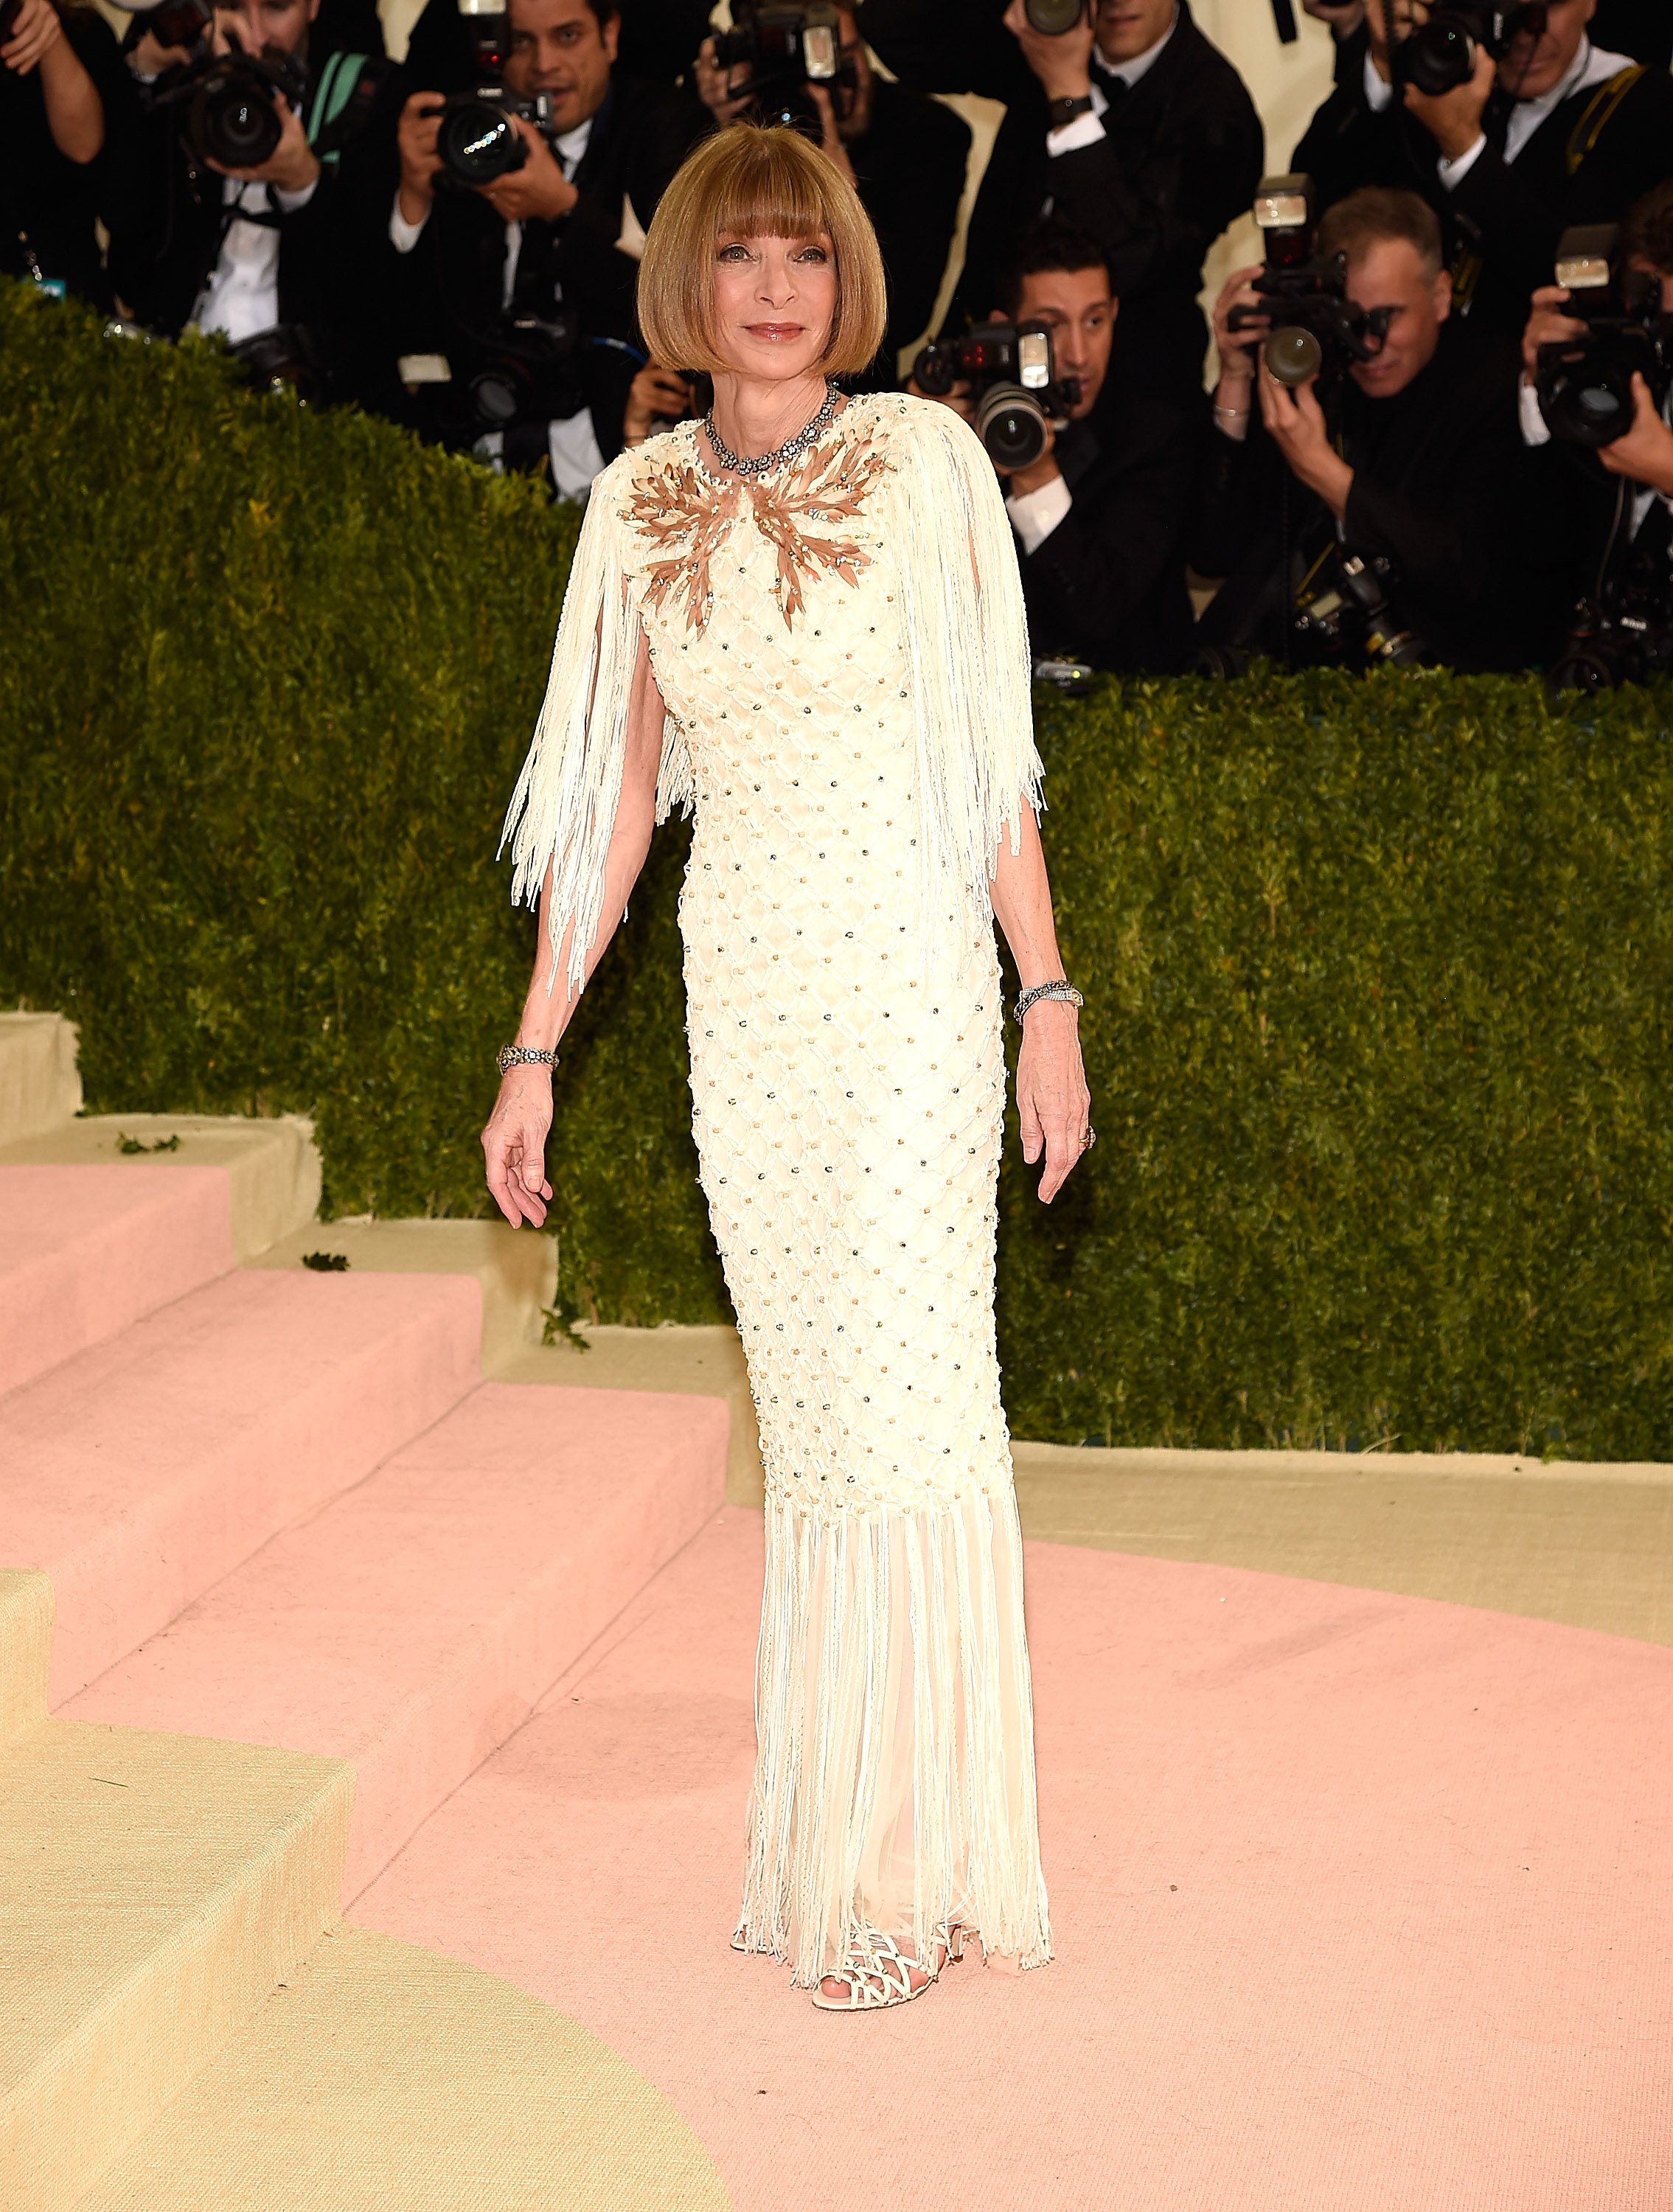 Anna Wintour Will Reportedly Bring Her Fierce Style To